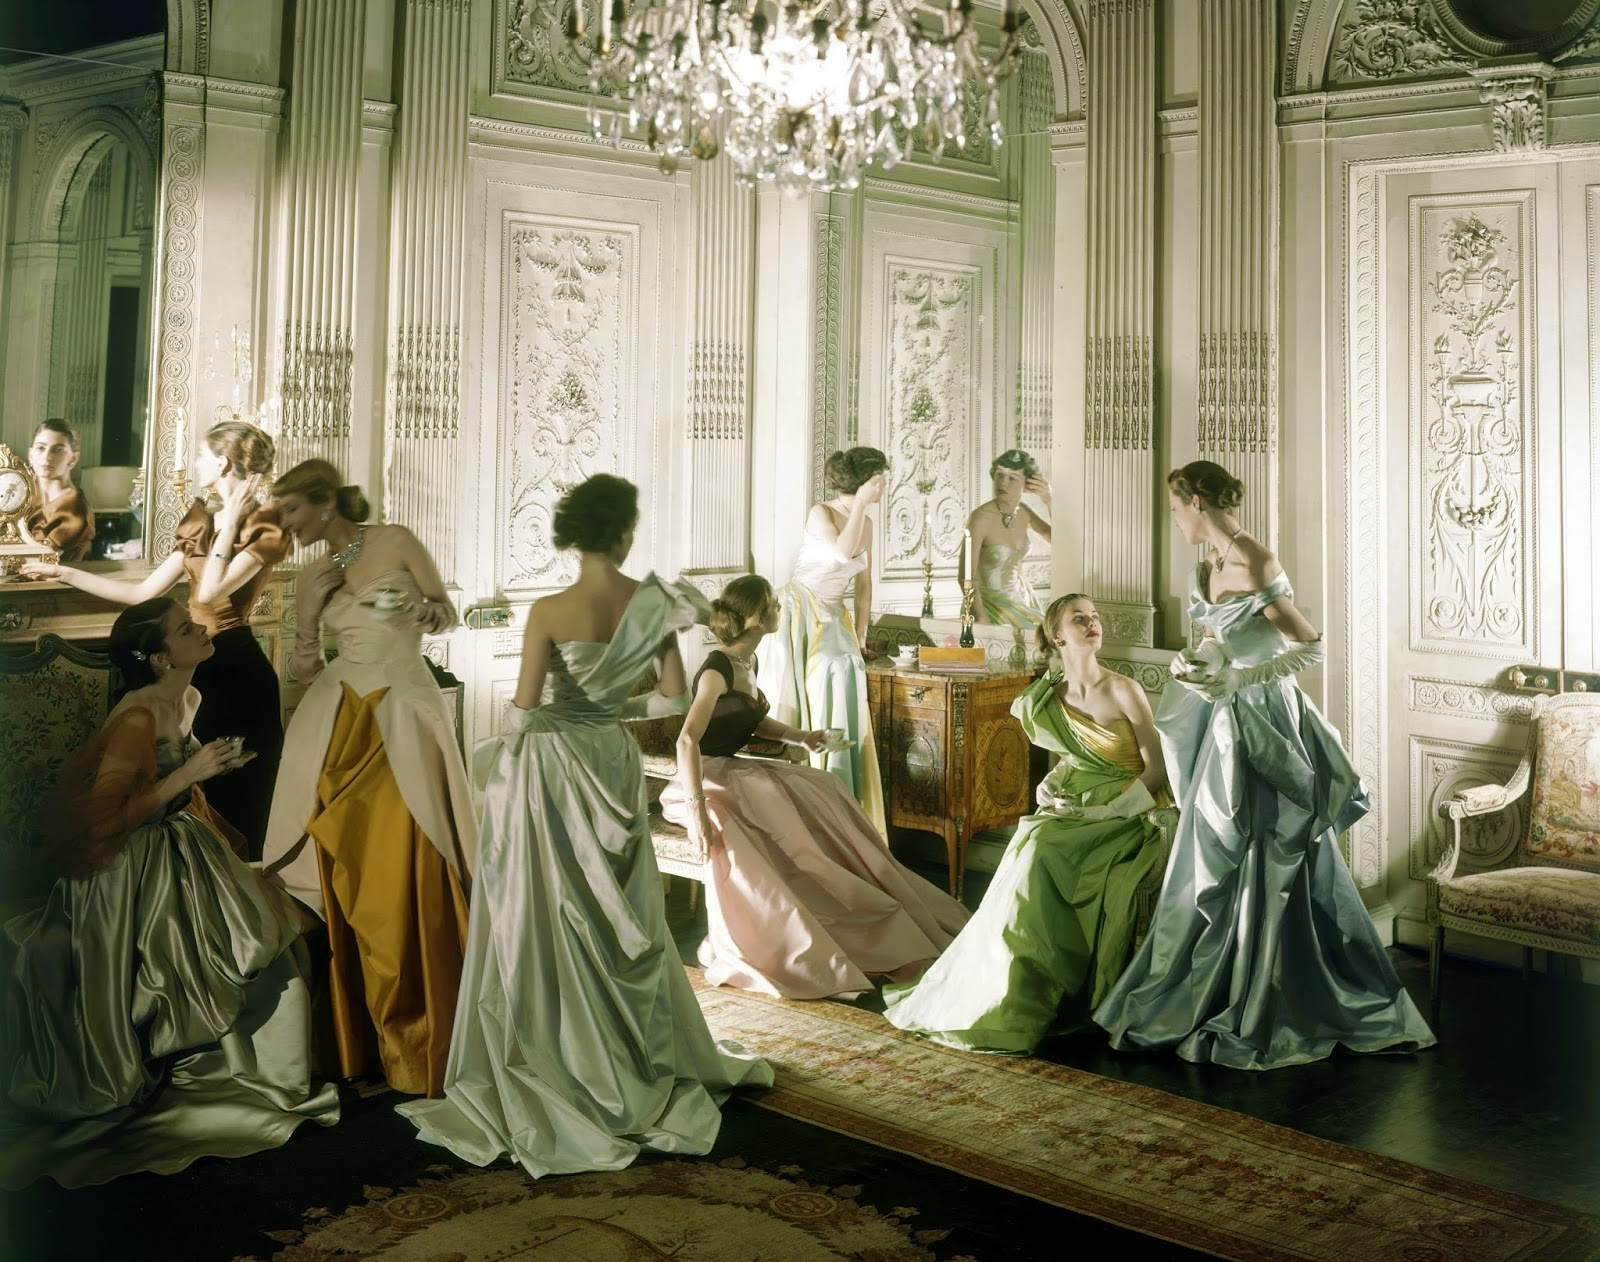 Vogue models in Charles James gowns at the French & Co New York by Cecil Beaton in 1948 | Ses Rêveries